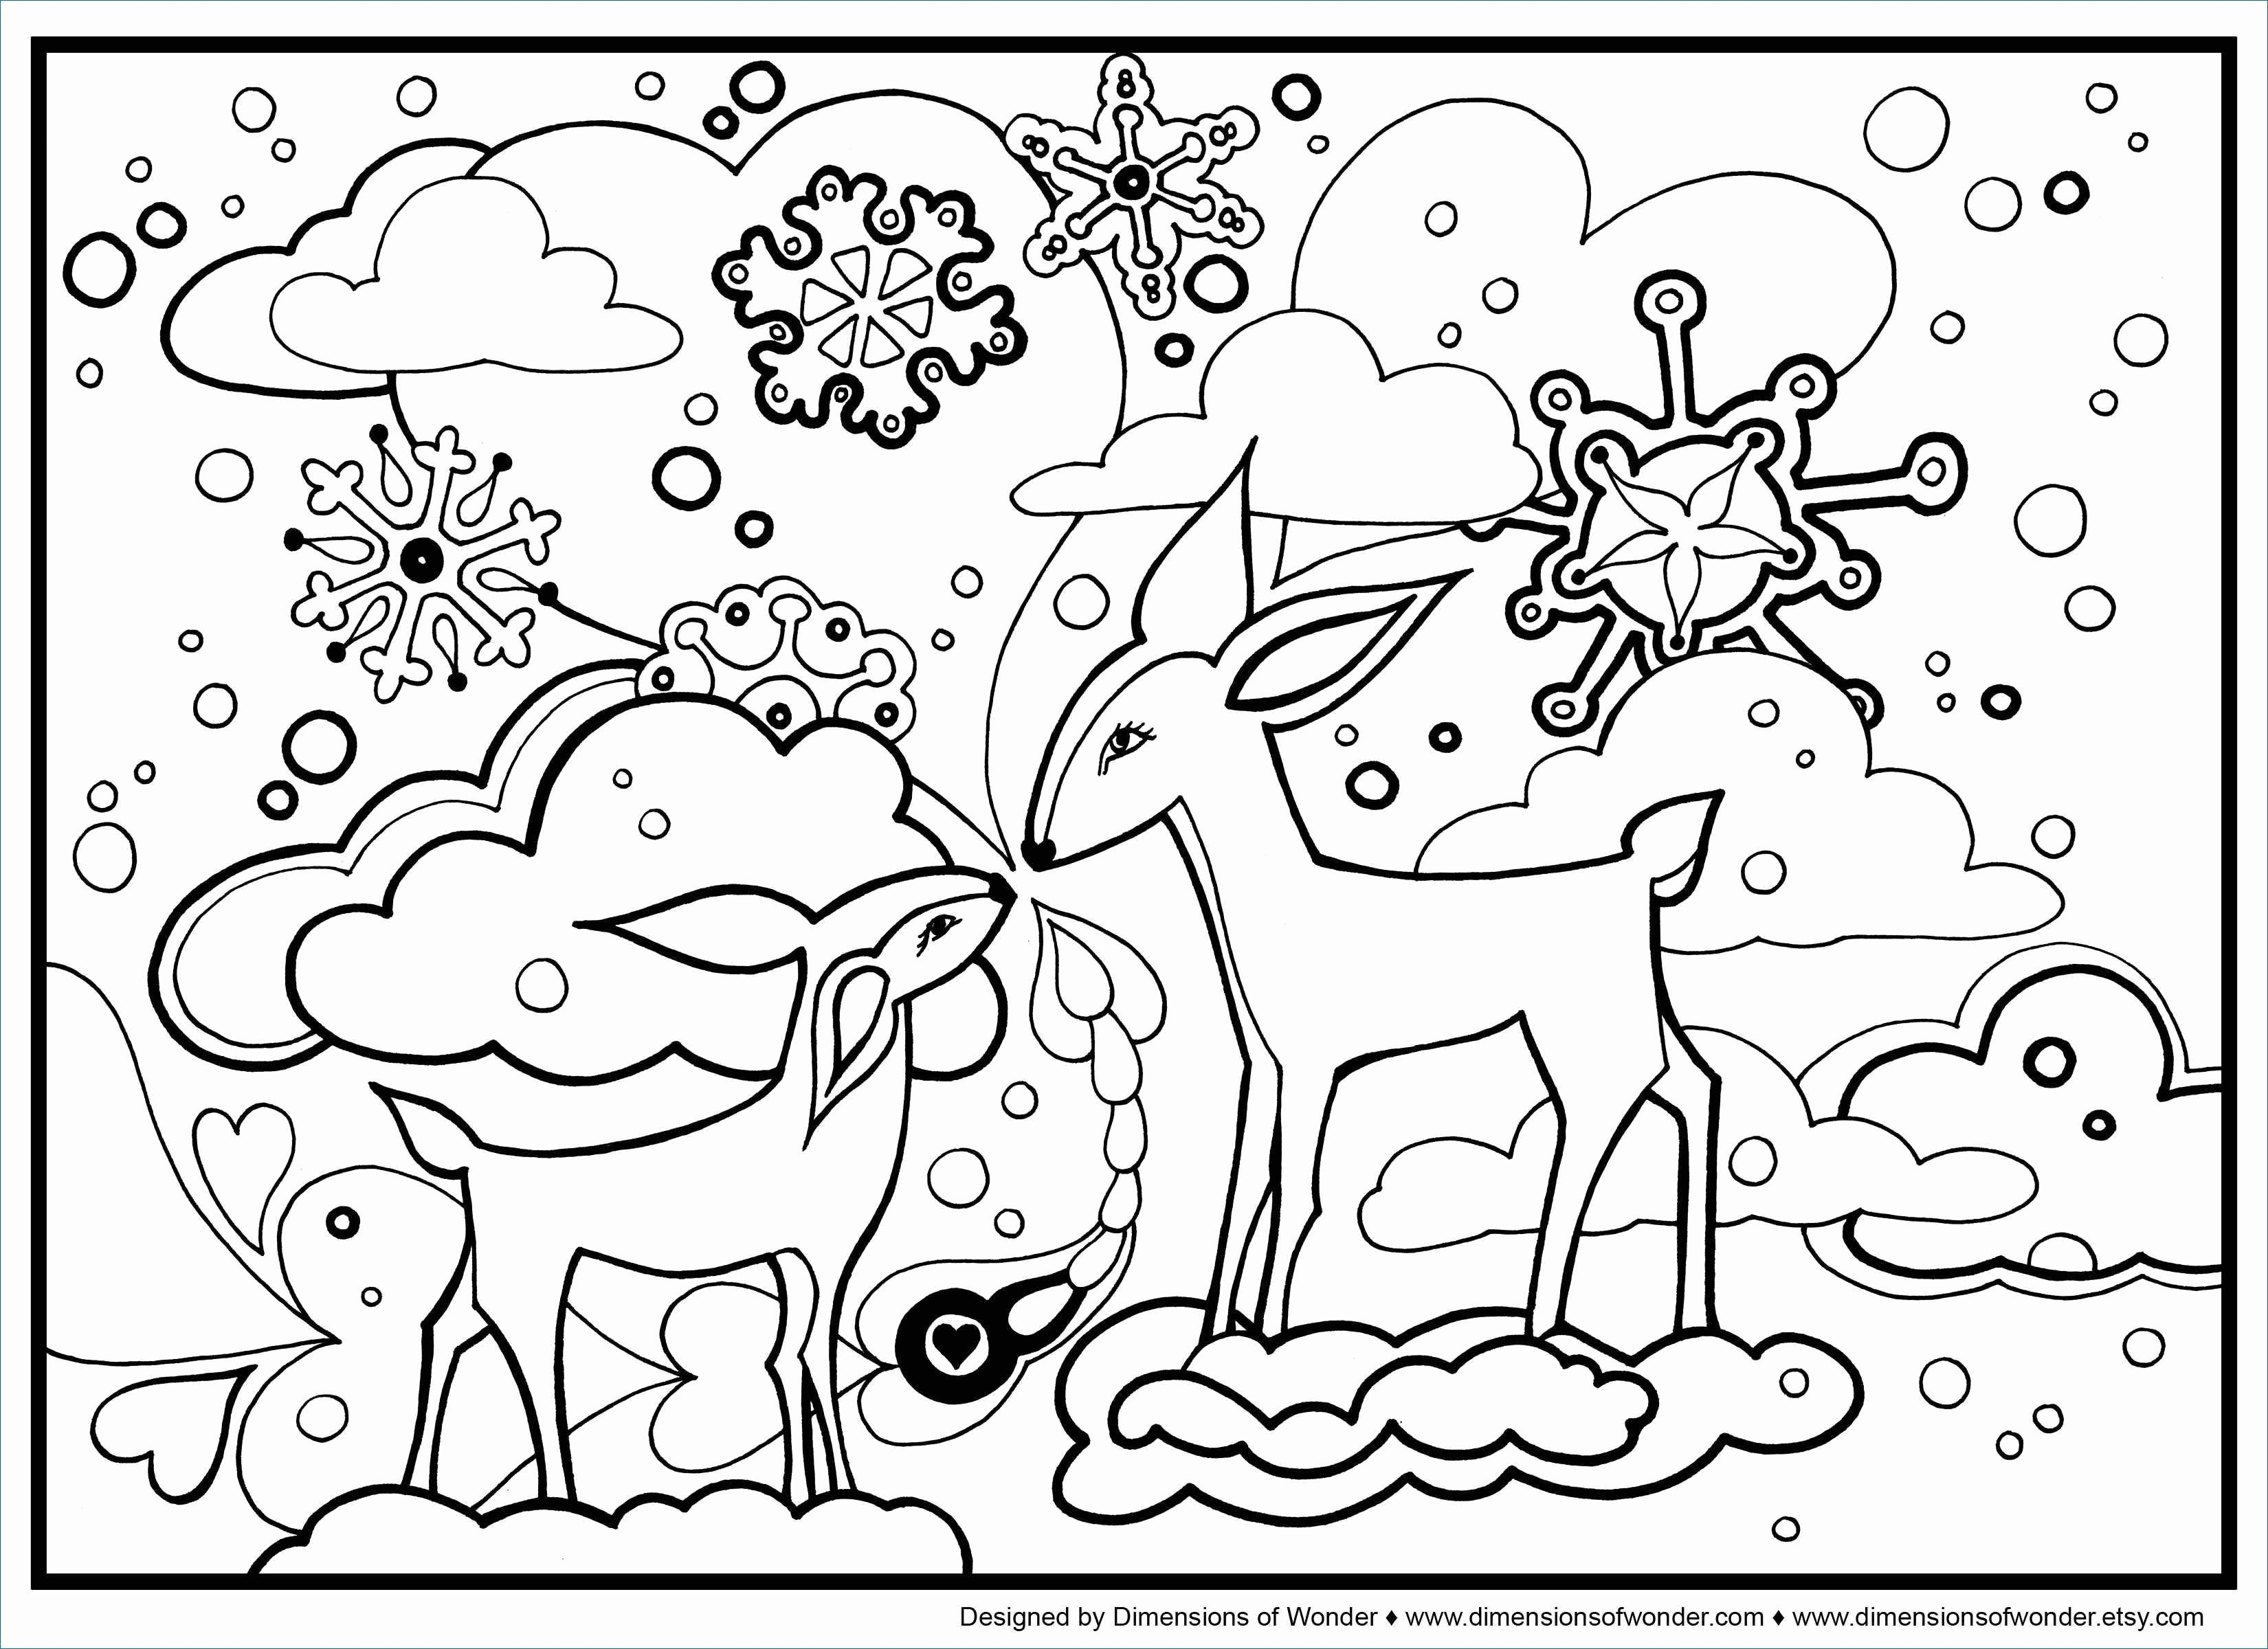 Winter Animals Coloring Pages Luxury Coloring Free Winter Coloring Pages Bookeets N Girl A Christmas Coloring Pages Animal Coloring Pages Coloring Pages Nature